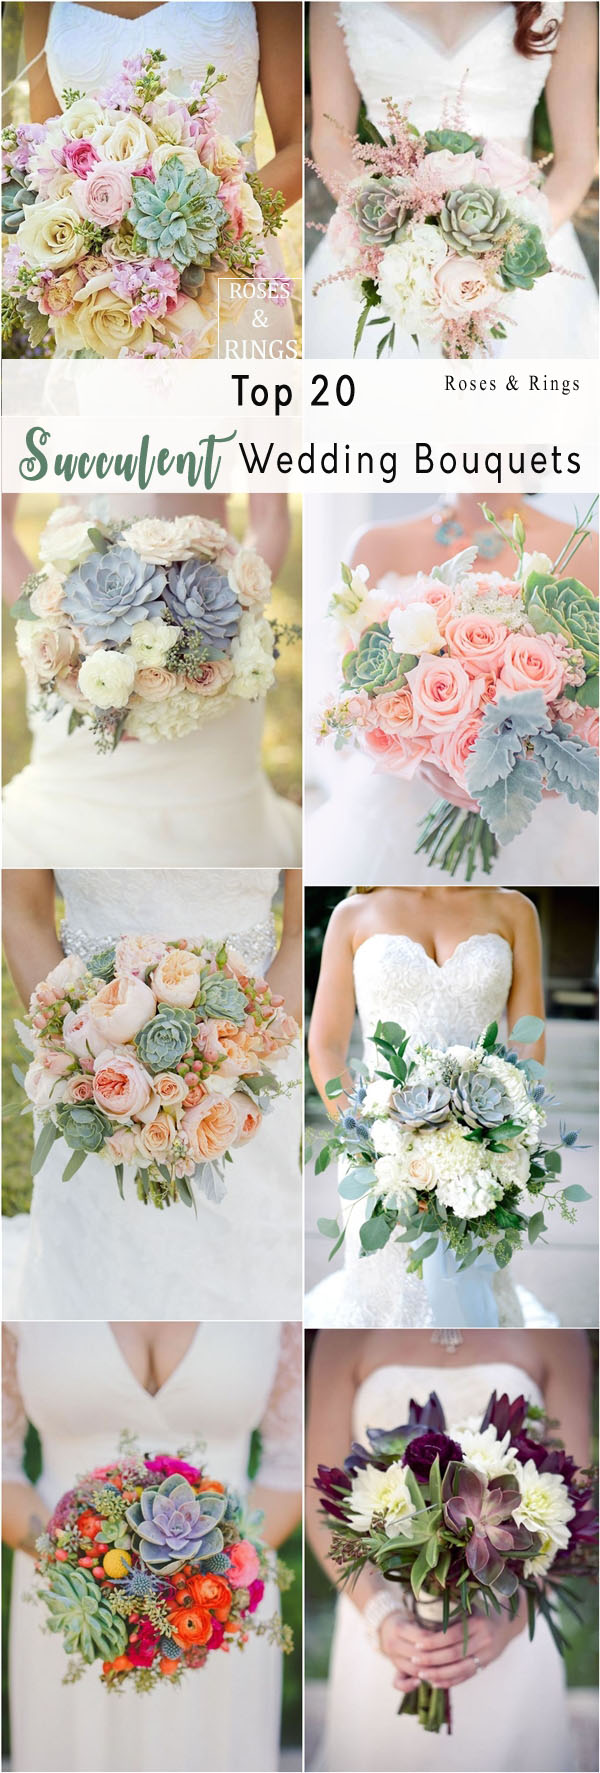 Top 20 Rustic Succulent Wedding Bouquets | Roses & Rings